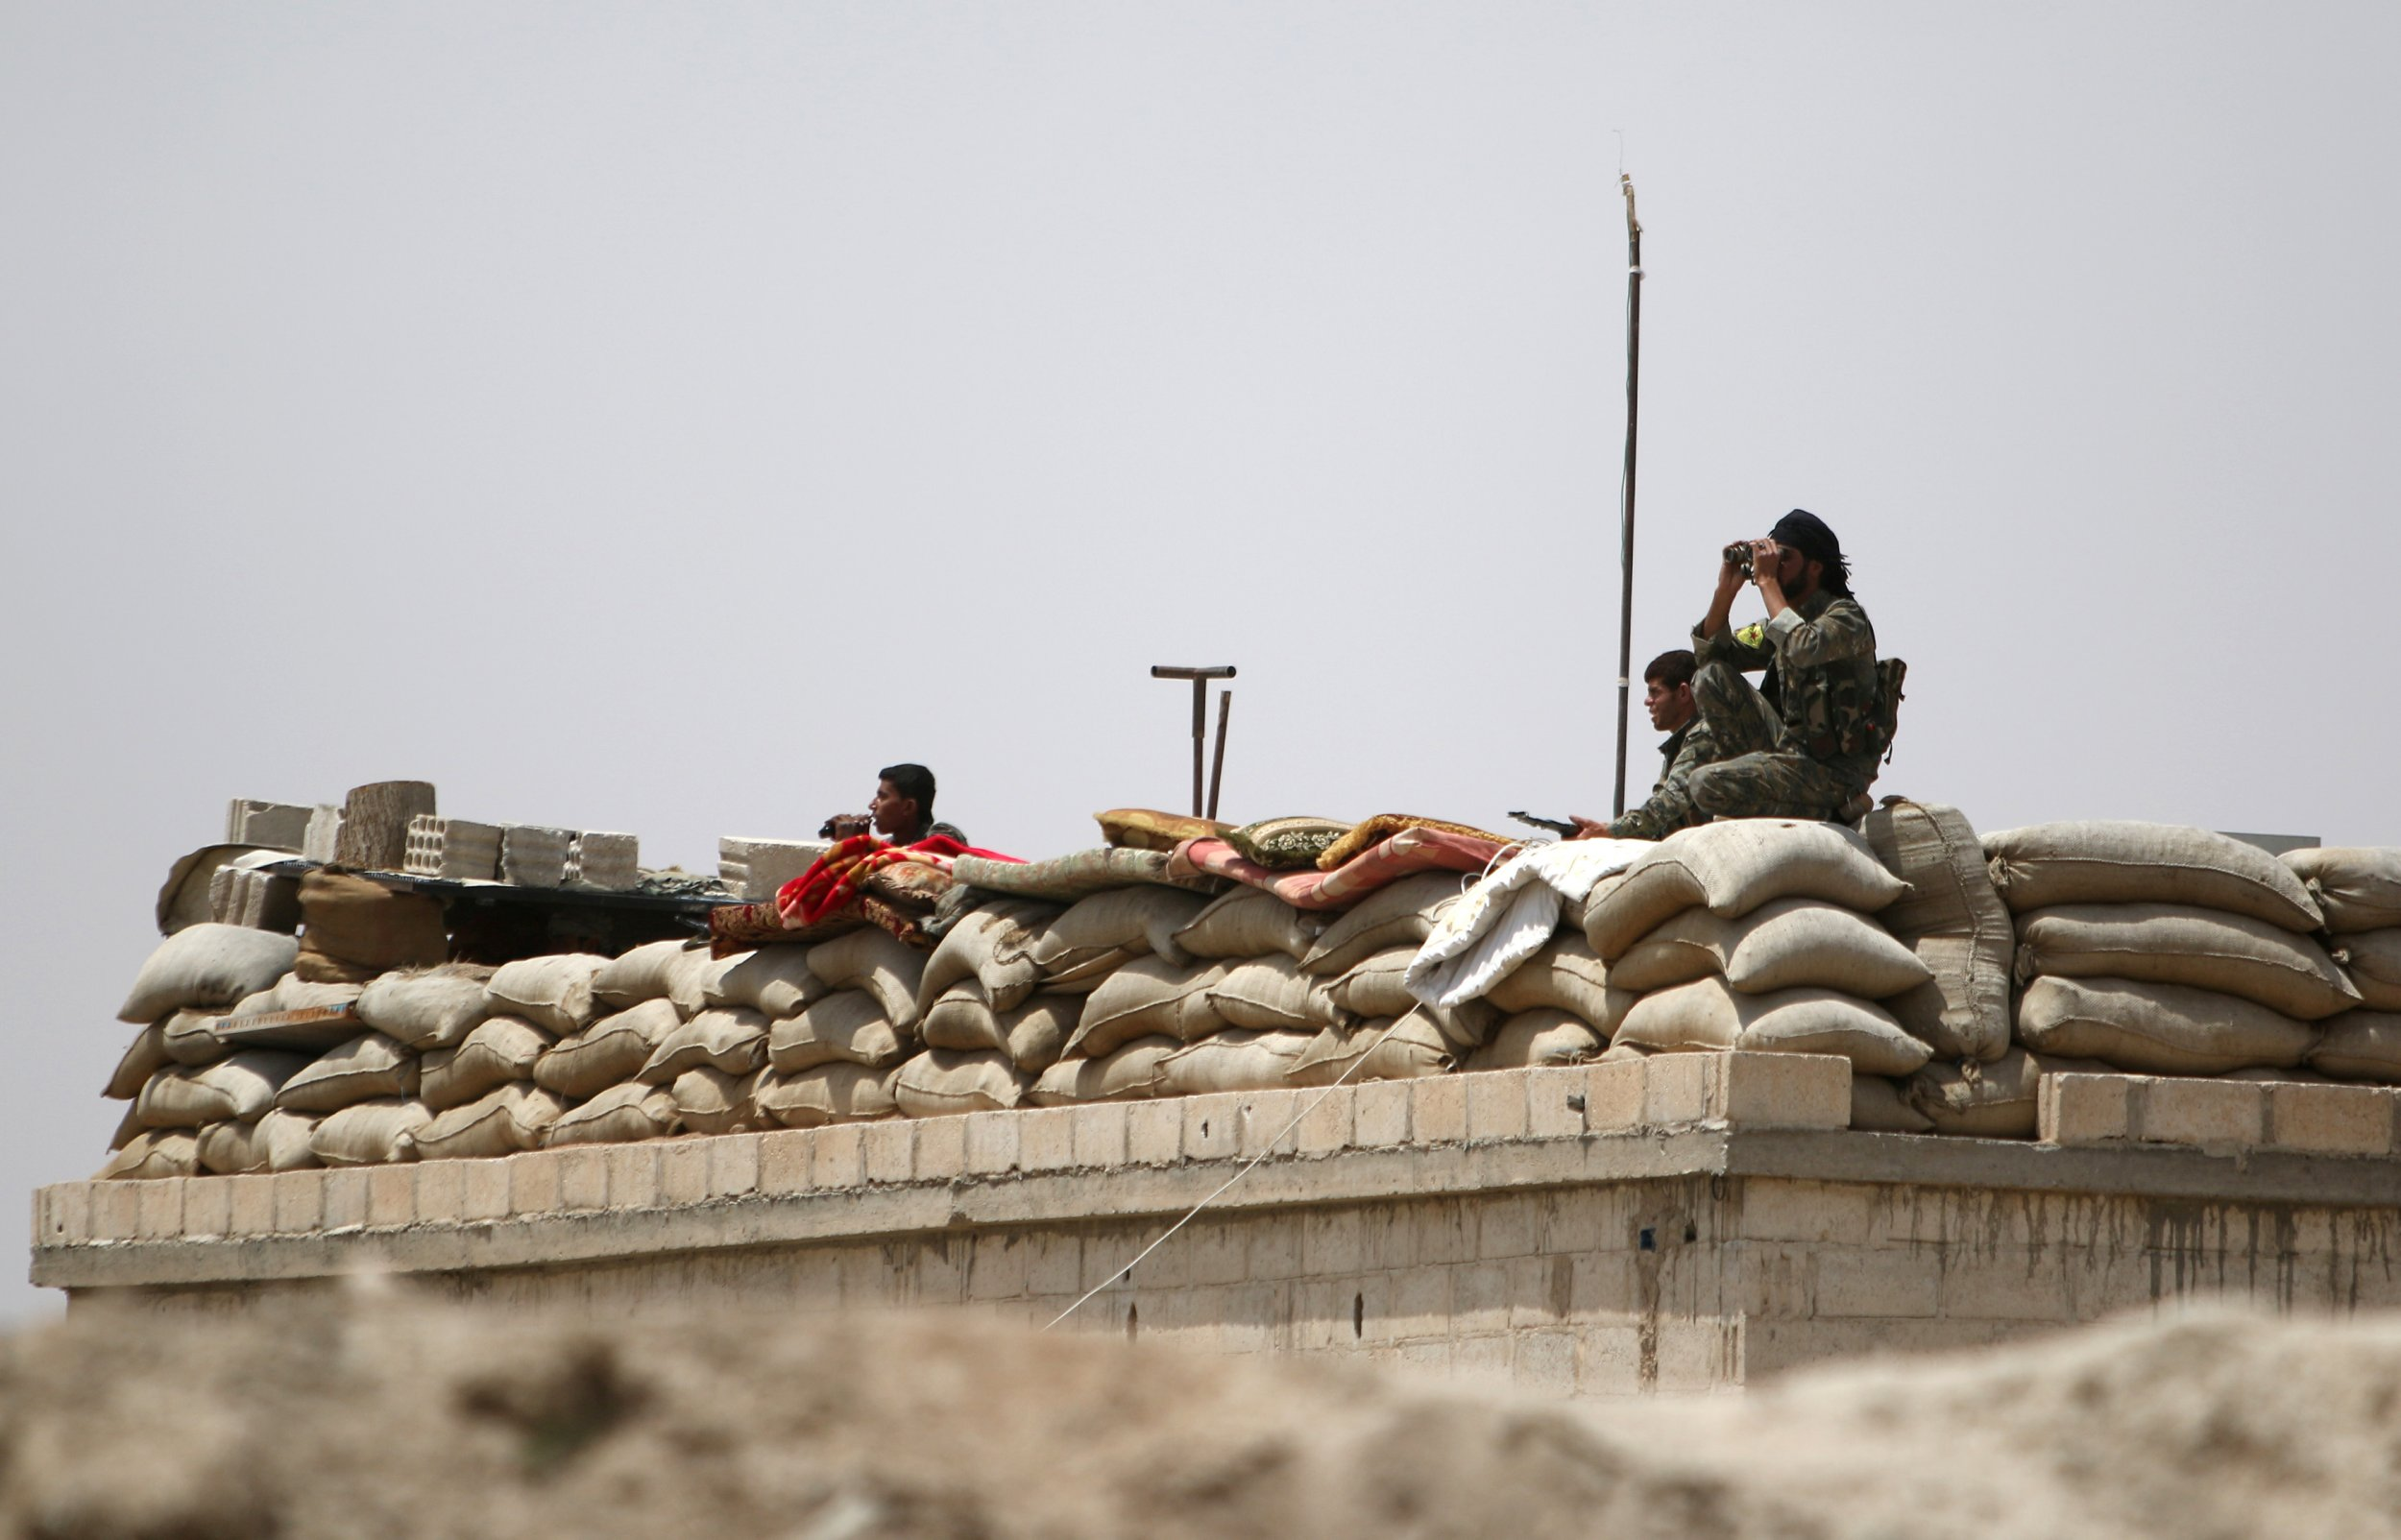 Lookout in Raqqa